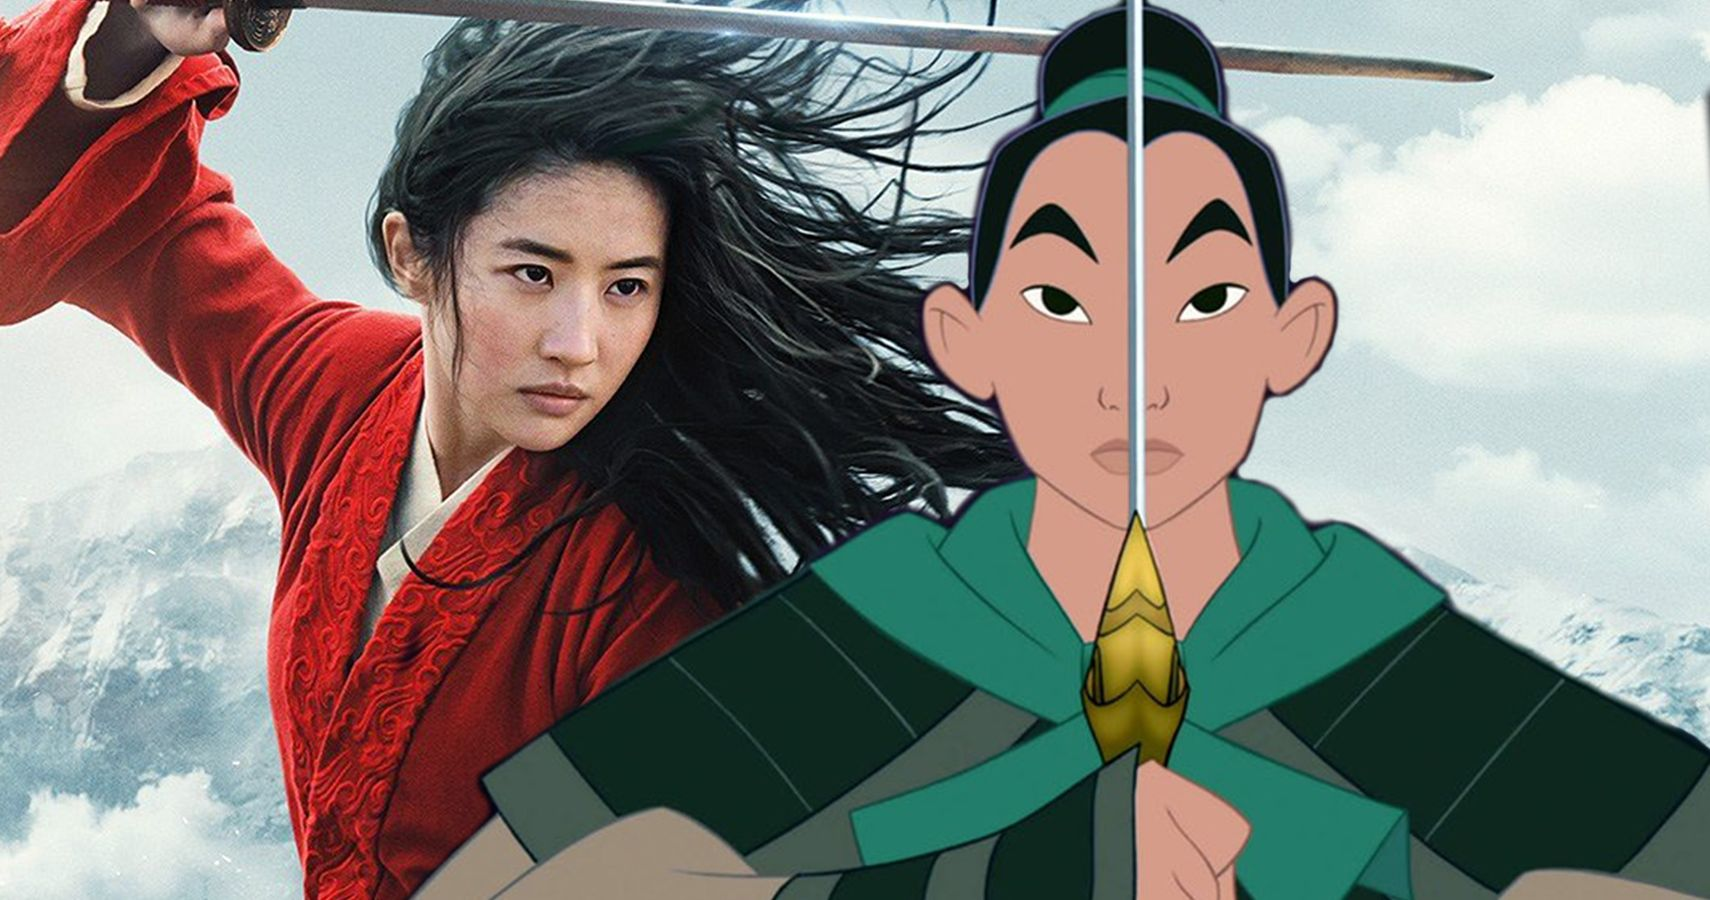 Mulan 5 Ways The Live Action Changes The Animated Story 5 Ways It Was Kept The Same